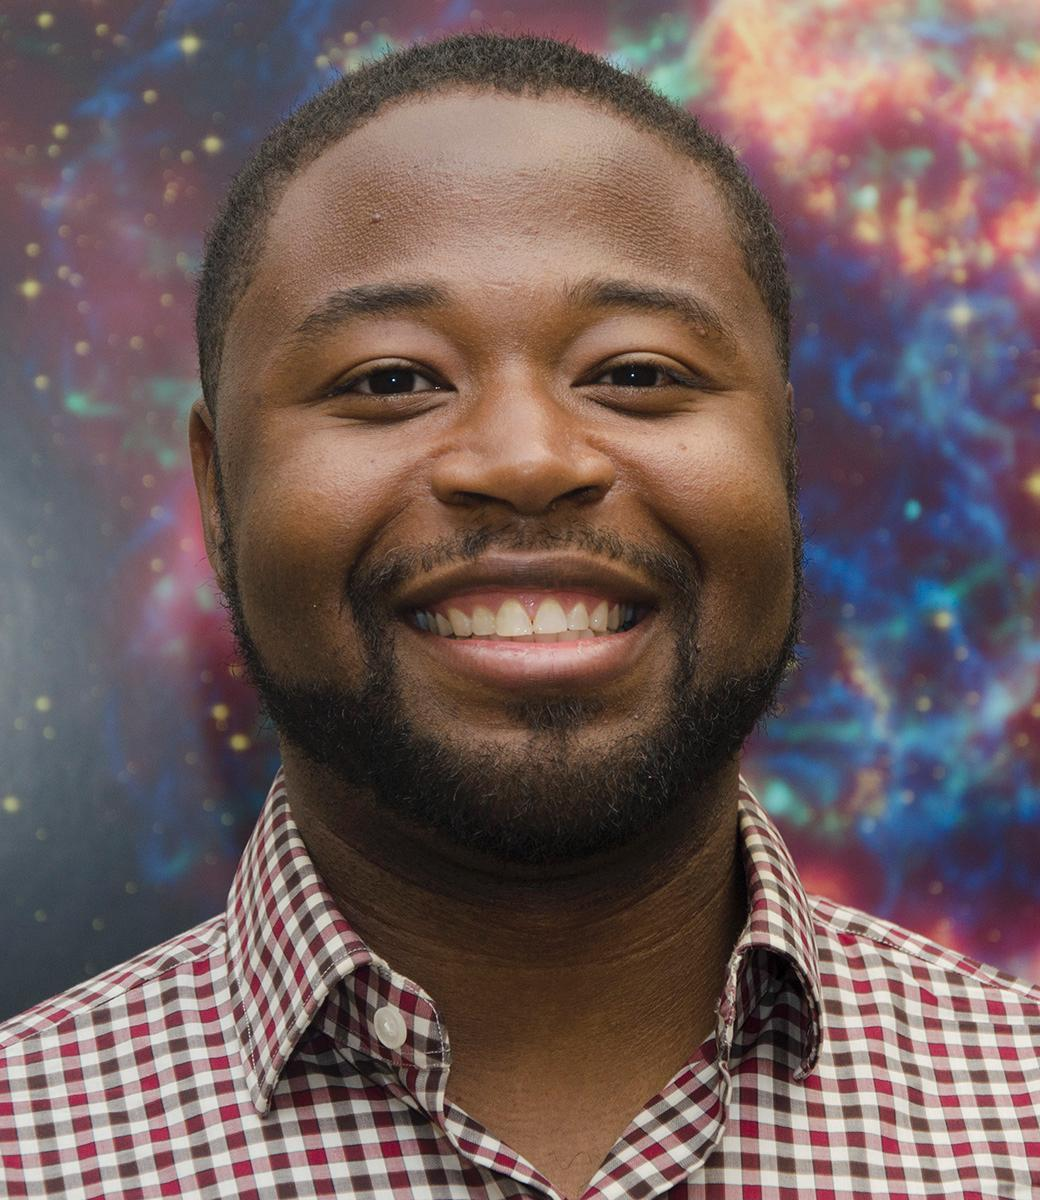 A smiling Black man with short hair and a gingham shirt, with an outer space-y background.